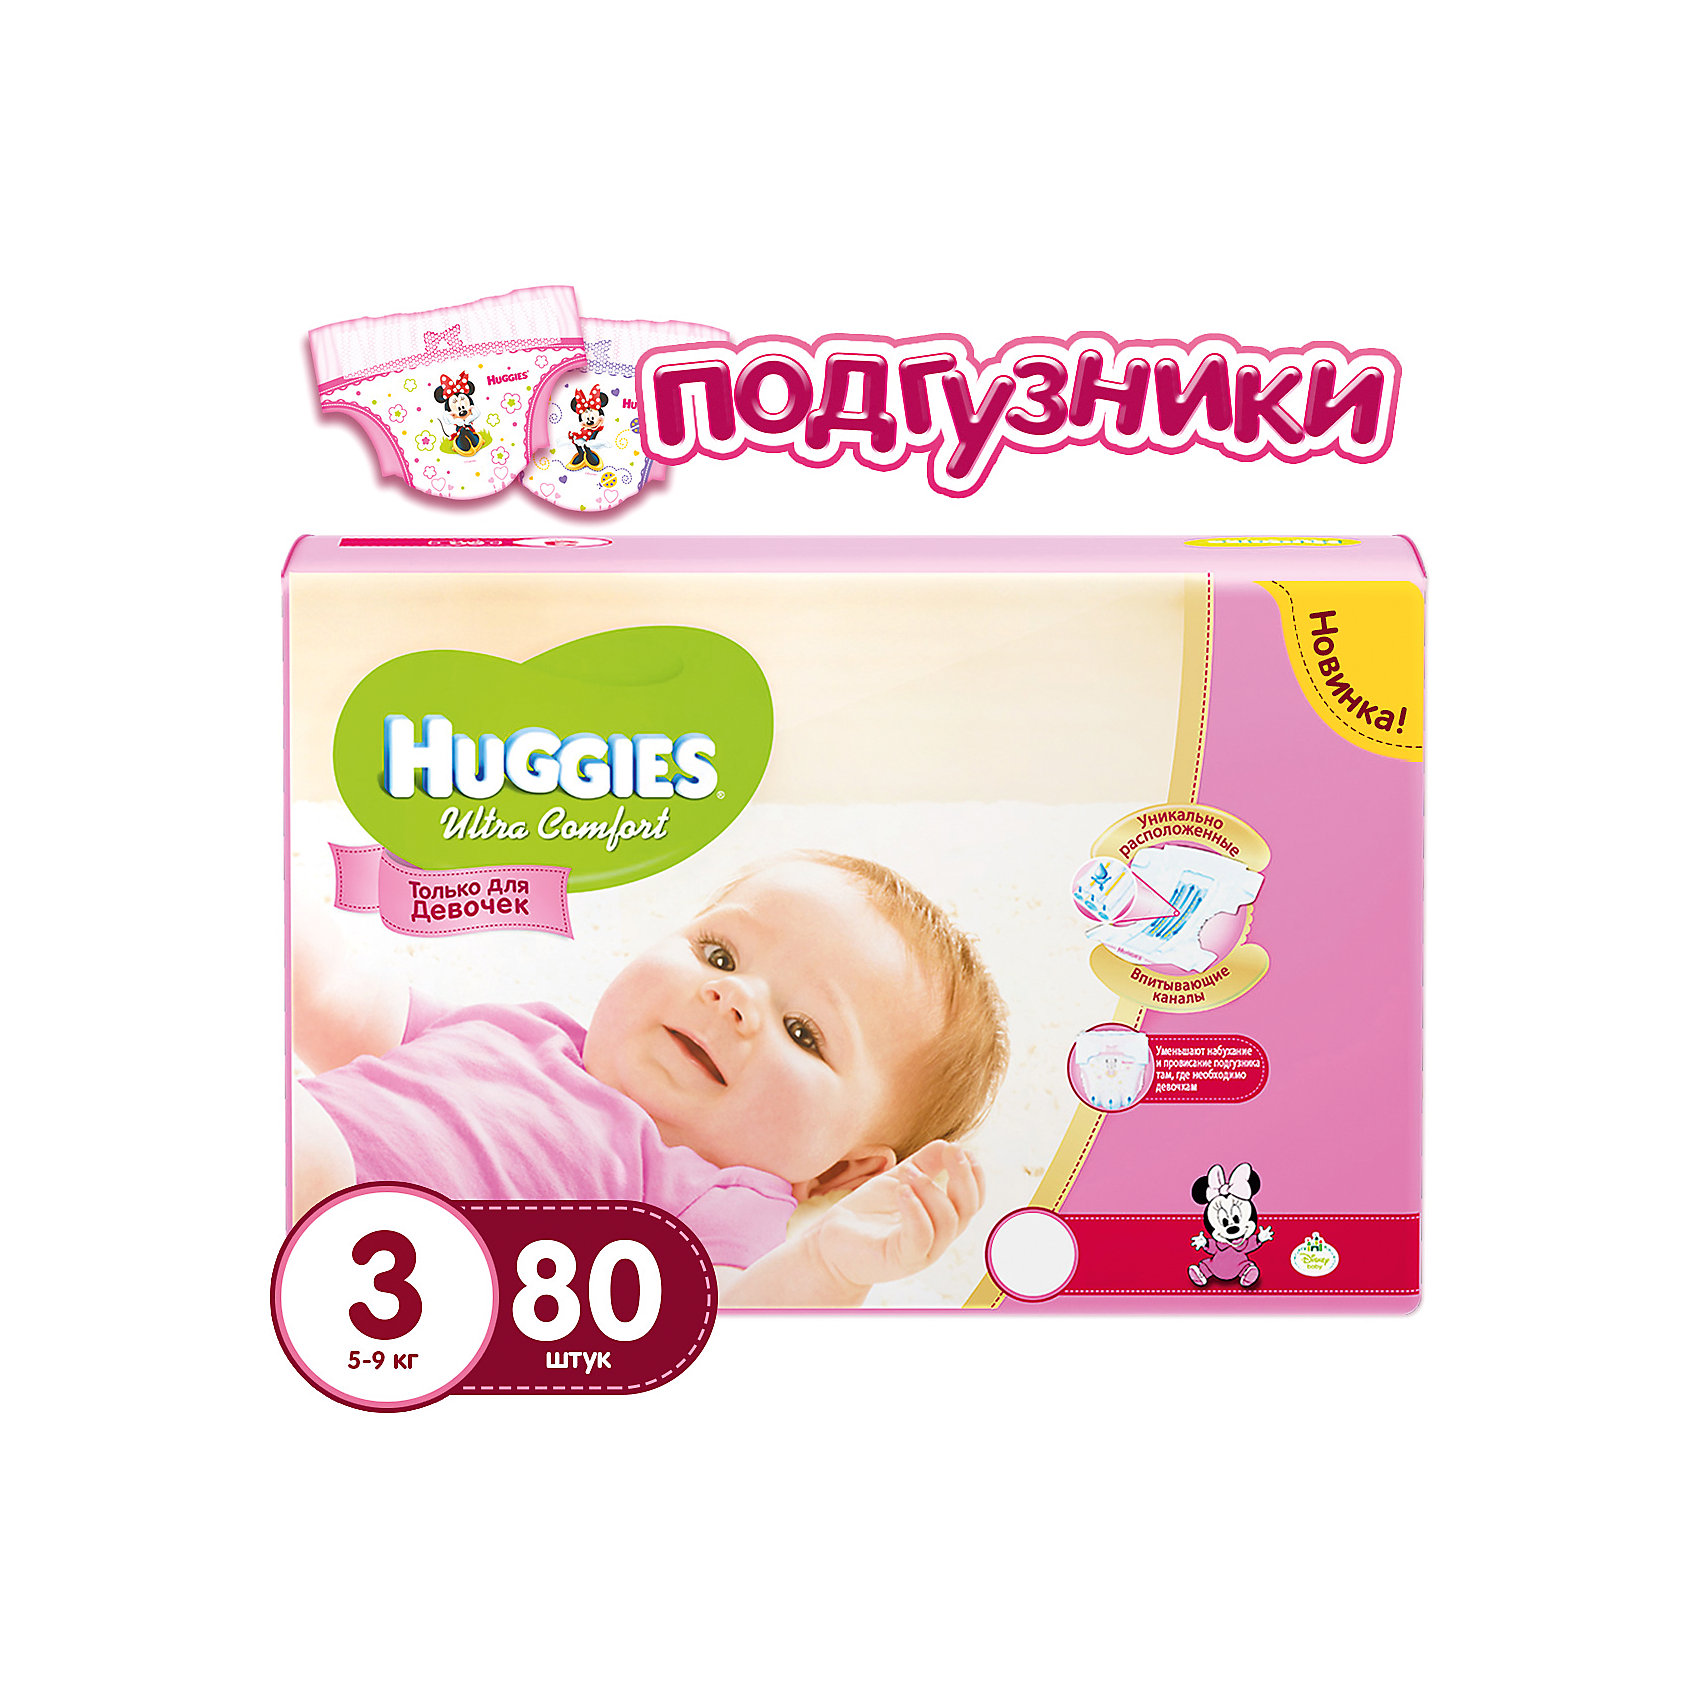 ���������� Huggies Ultra Comfort ��� ������� Mega Pack (3) 5-9 ��, 80 ��. (HUGGIES)